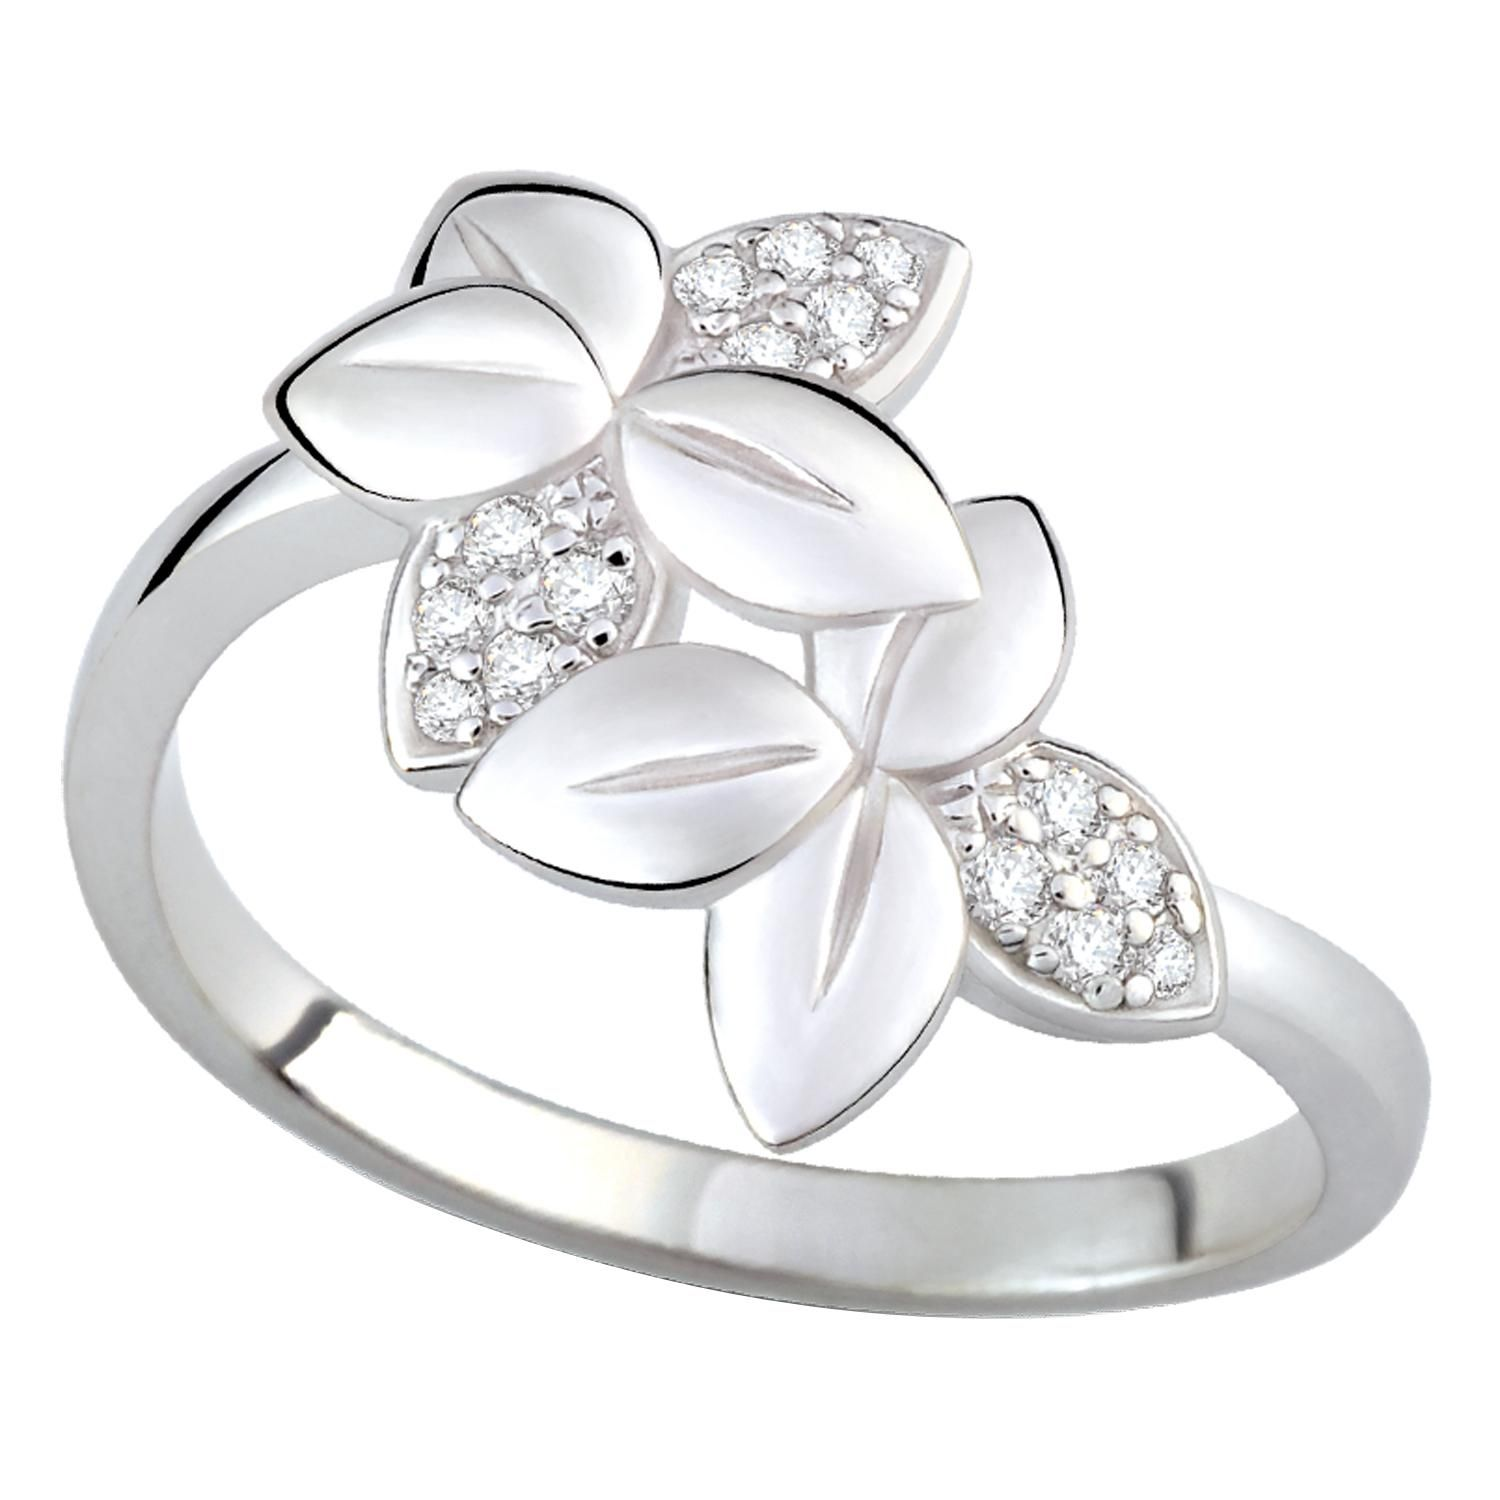 Ways And Methods Of Selecting Rings For Long, Skinny, And Short ...